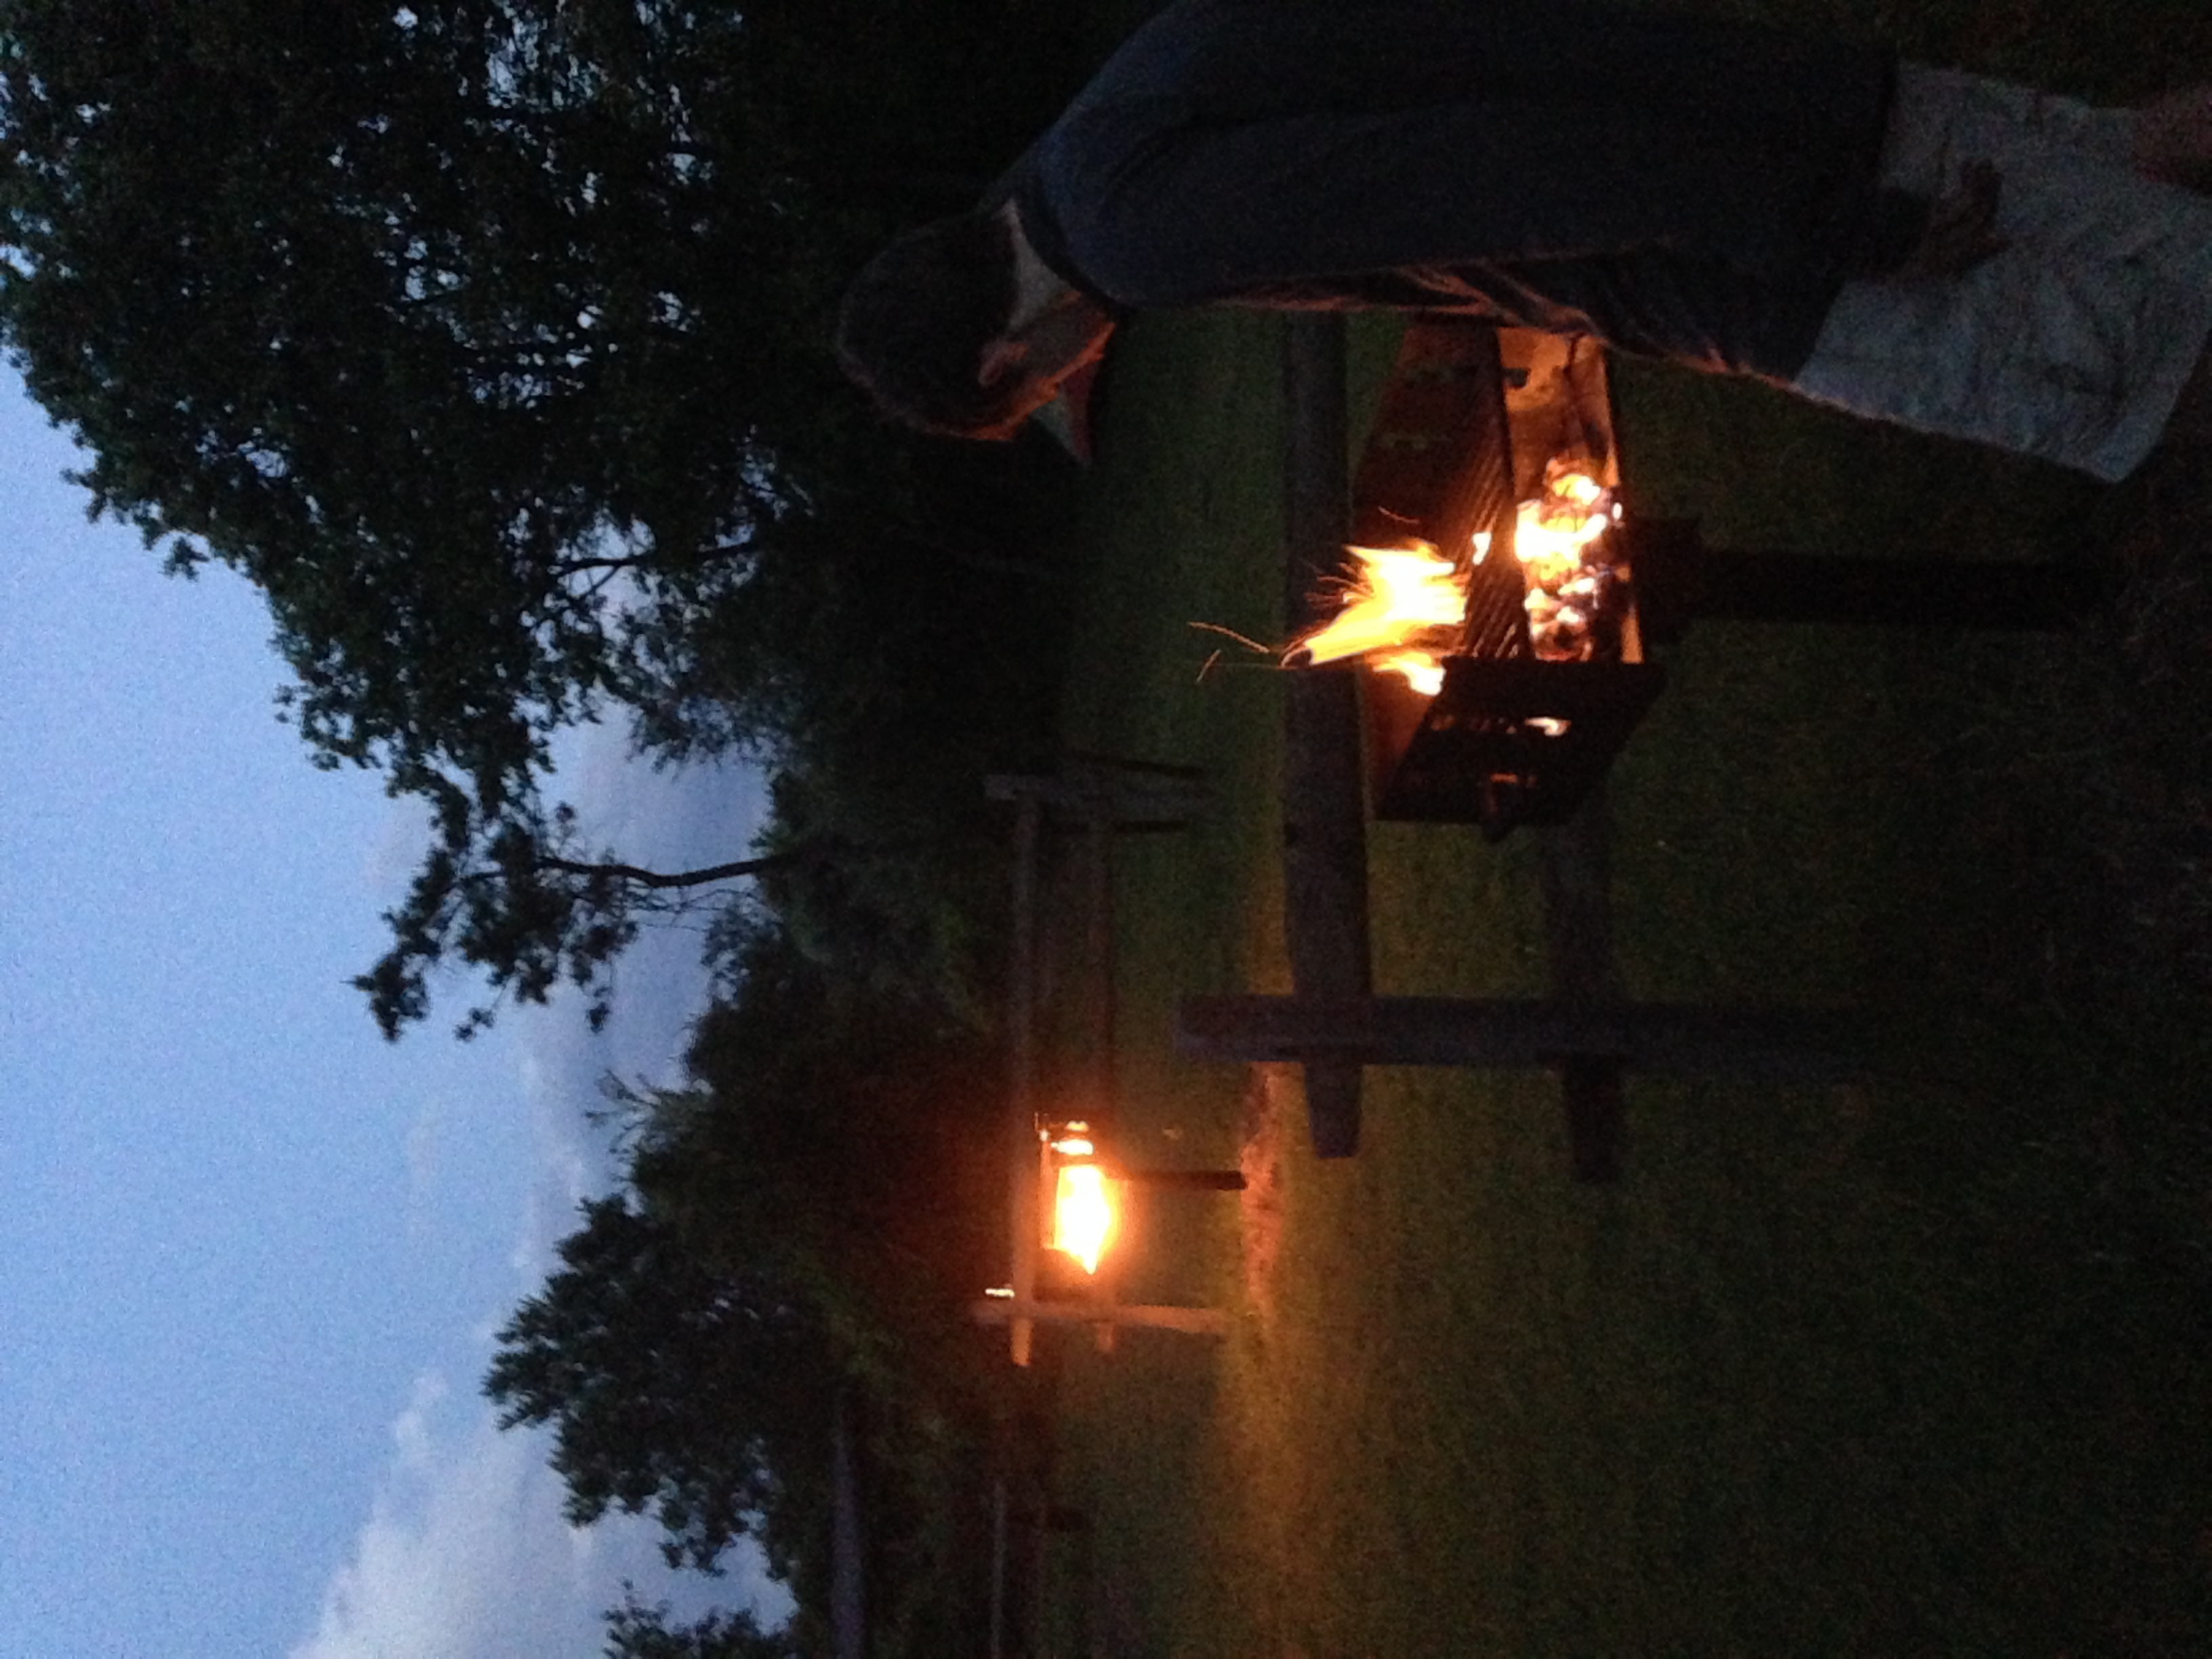 Fire pits and grills are scattered throughout the campgrounds